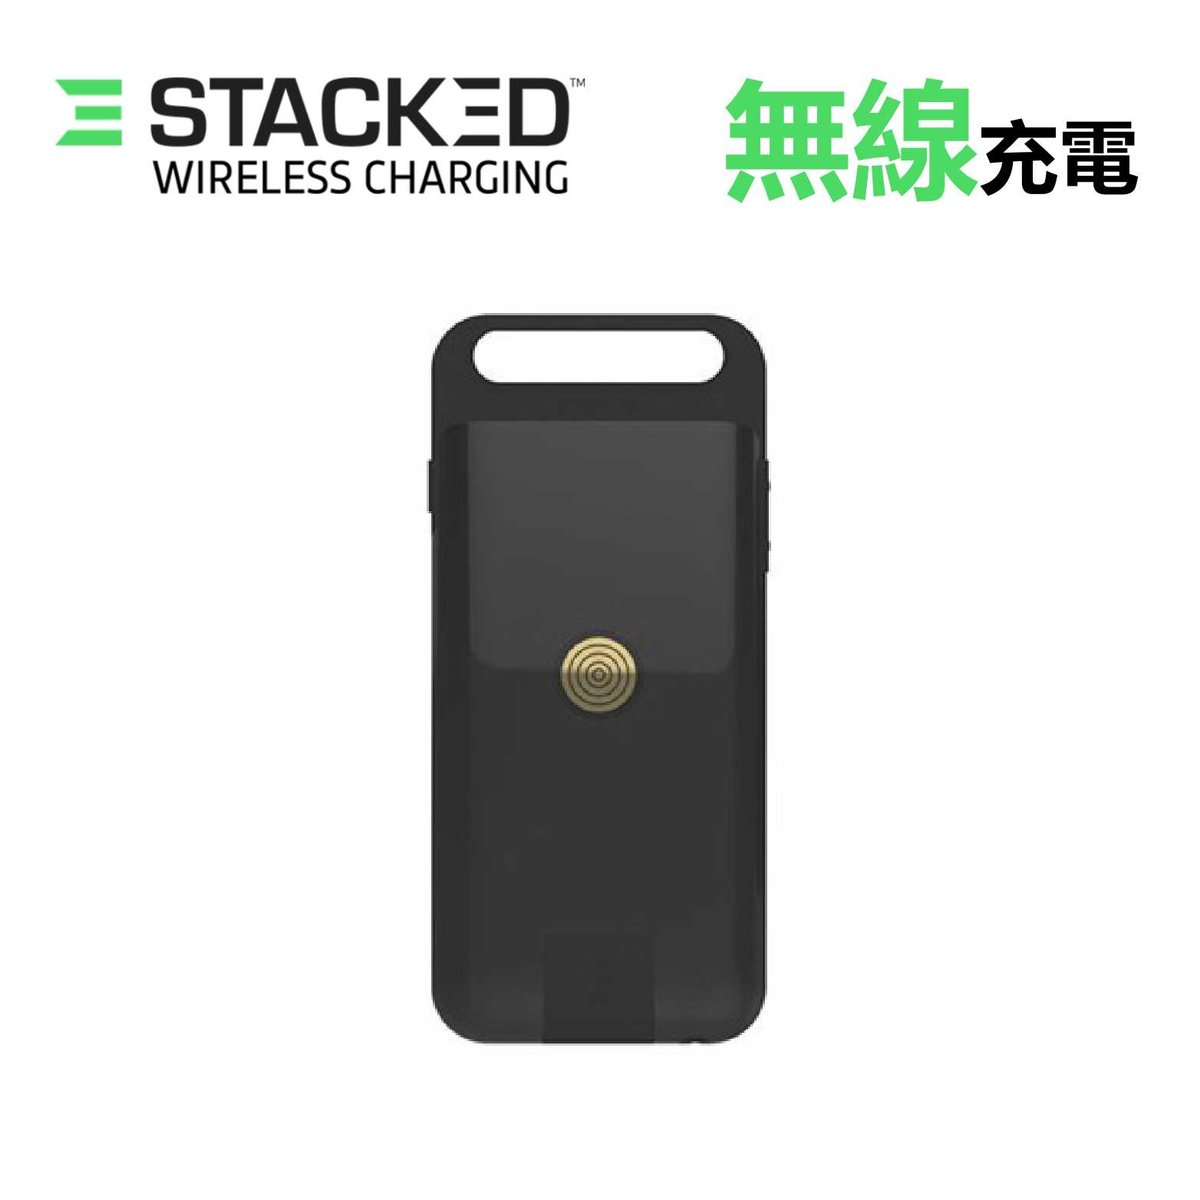 Charging Case made for iPhone 6 Plus / 6S Plus (SI6PCB01-BK)